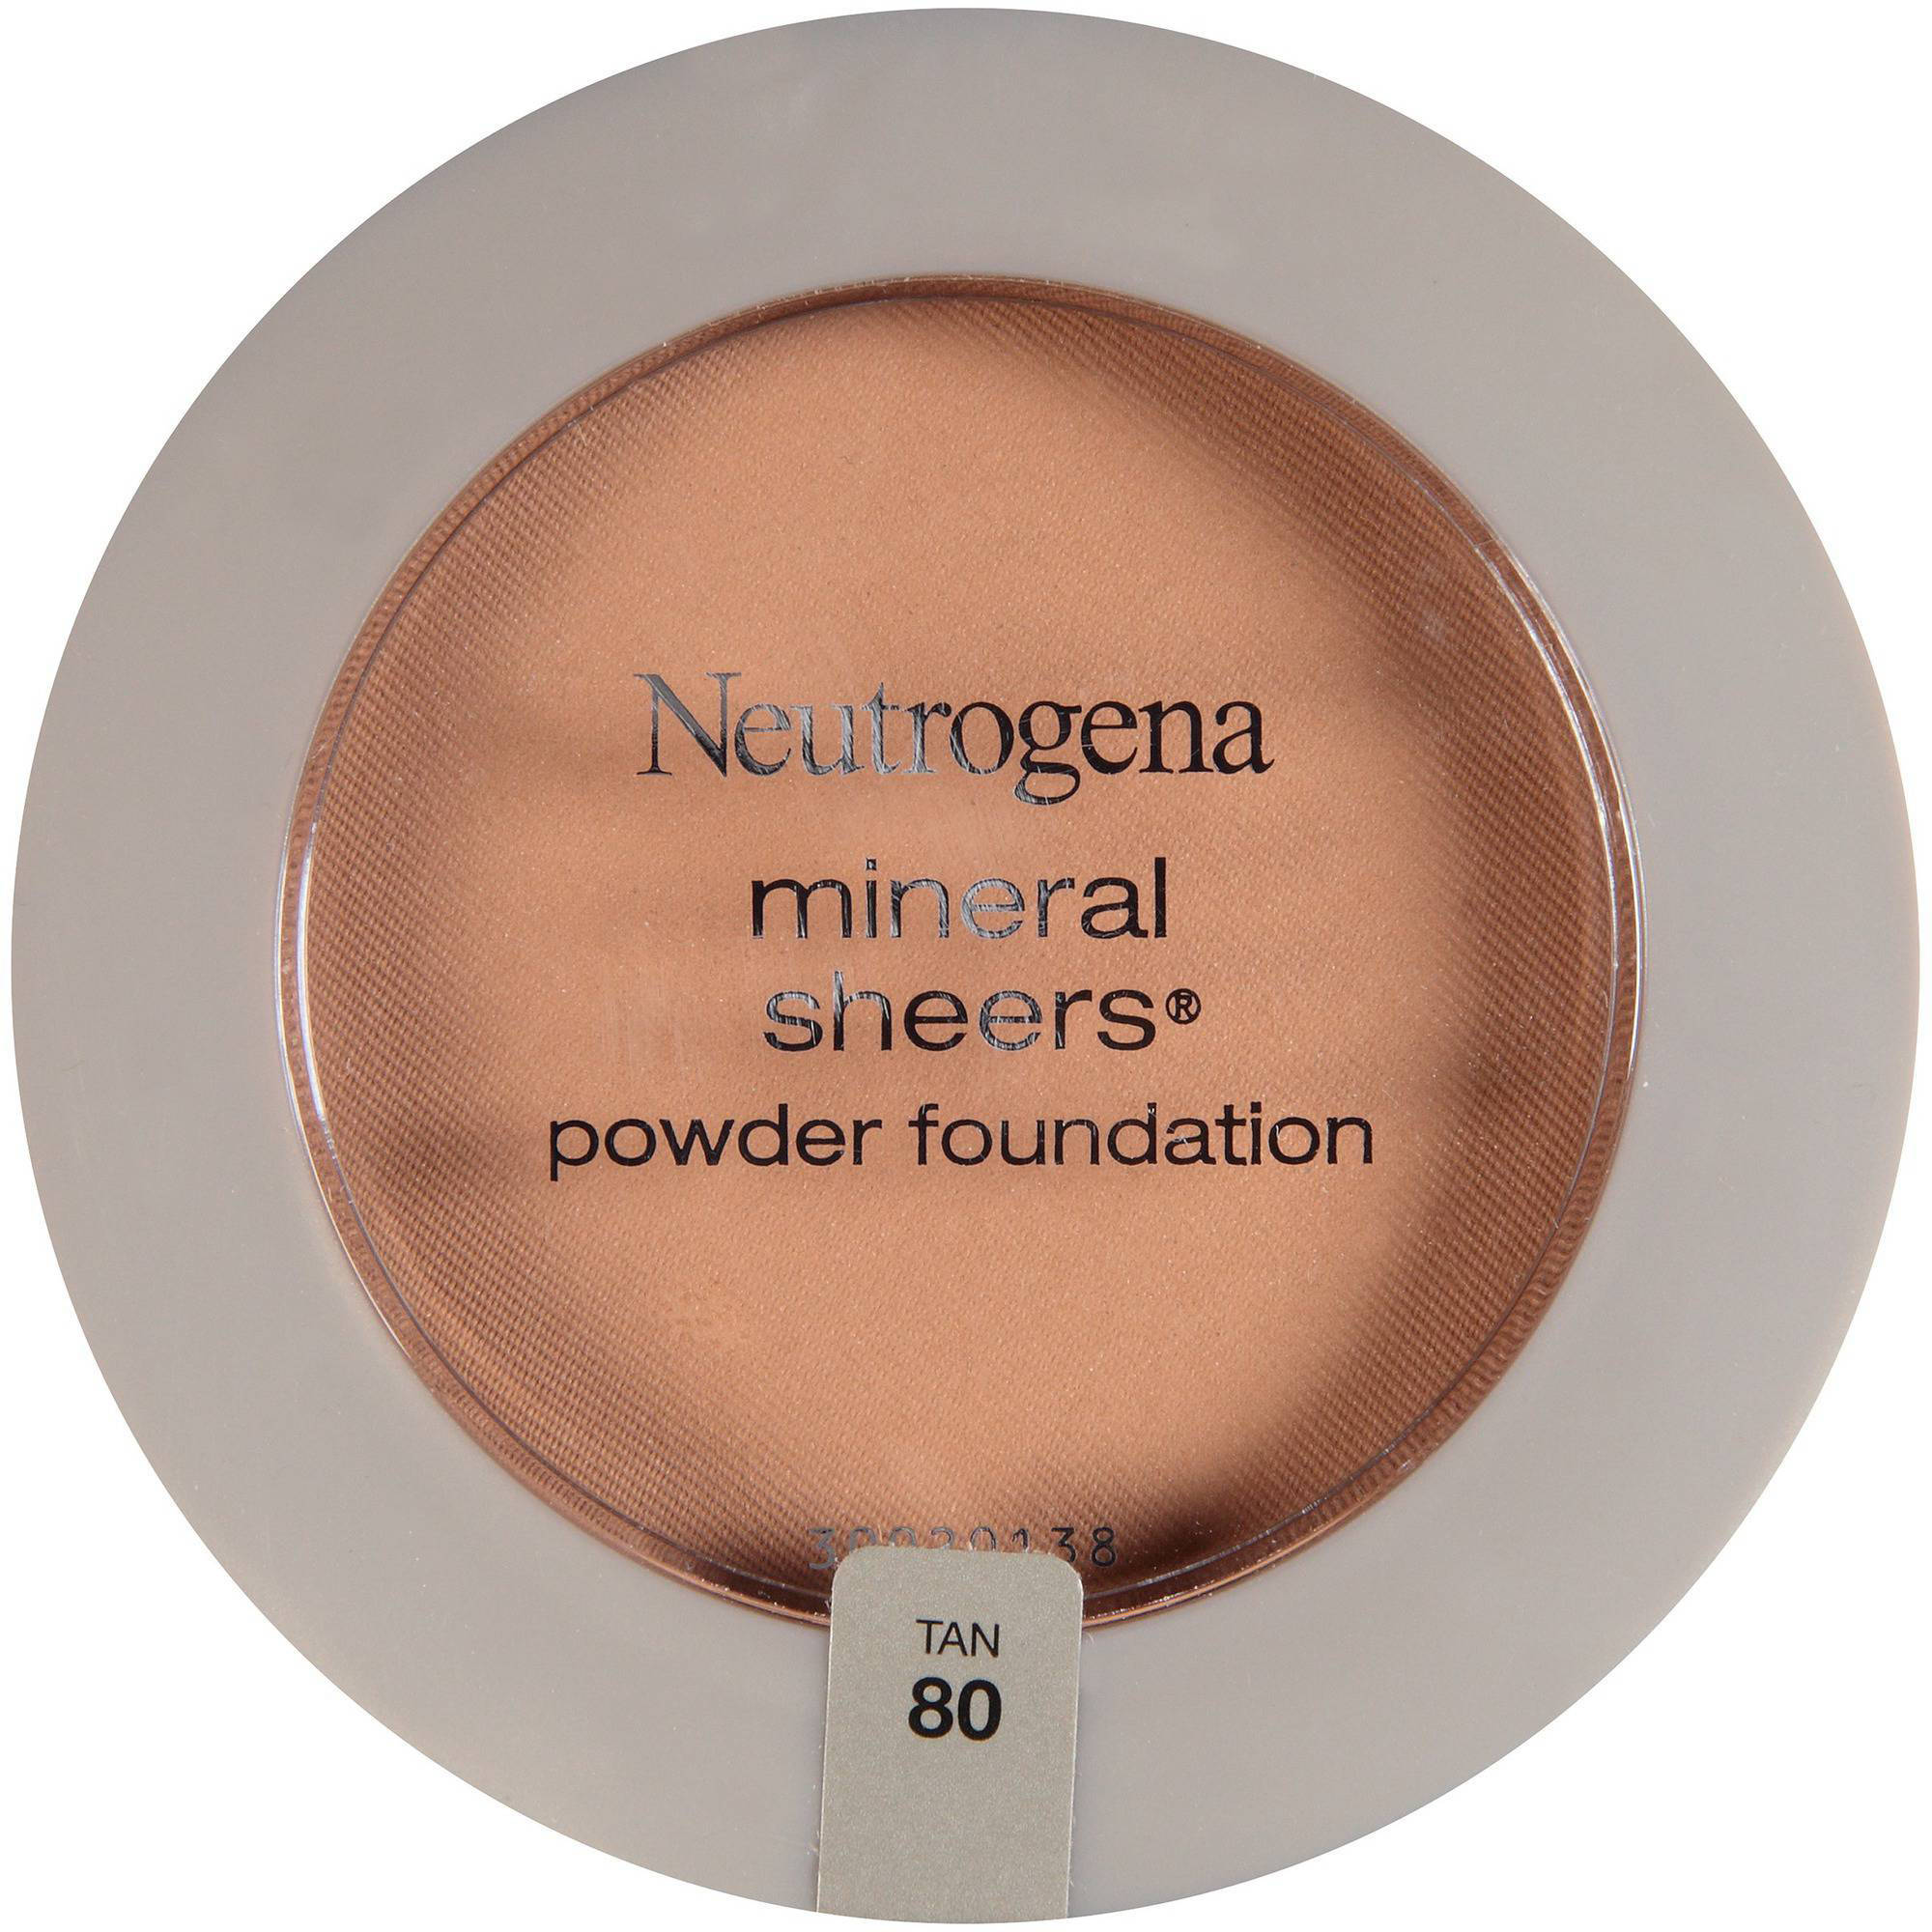 Neutrogena Mineral Sheers Compact Powder Foundation SPF 20, Tan 80, 0.34 oz